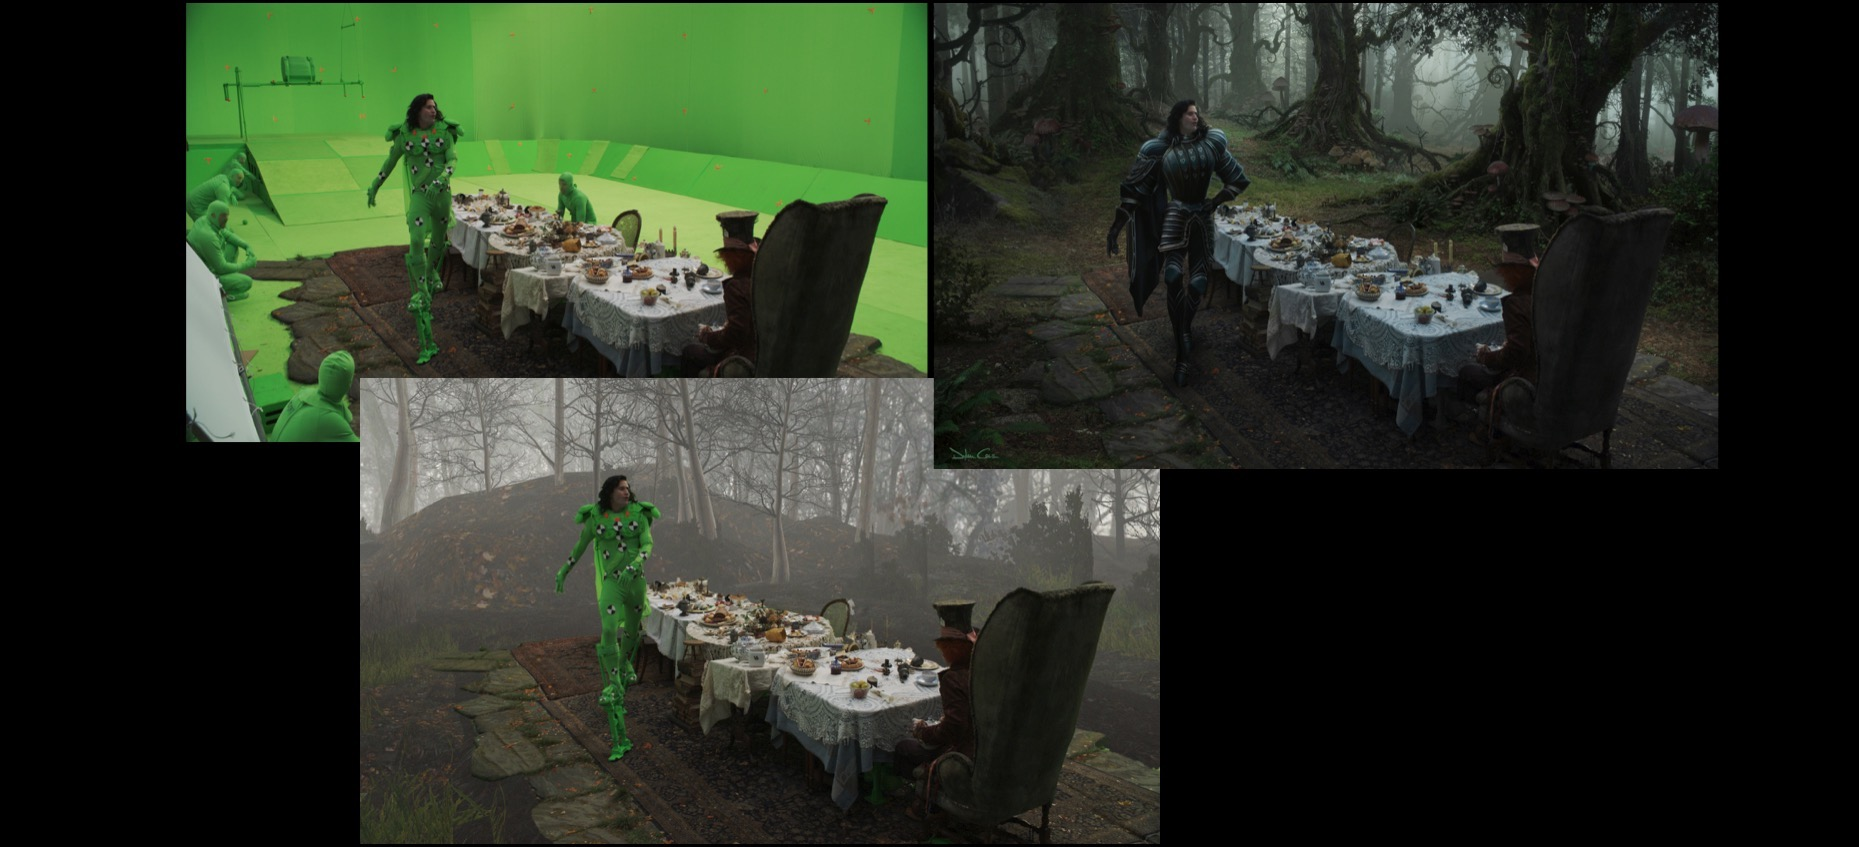 Collage of visual effects production process from Tim Burton's Alice In Wonderland